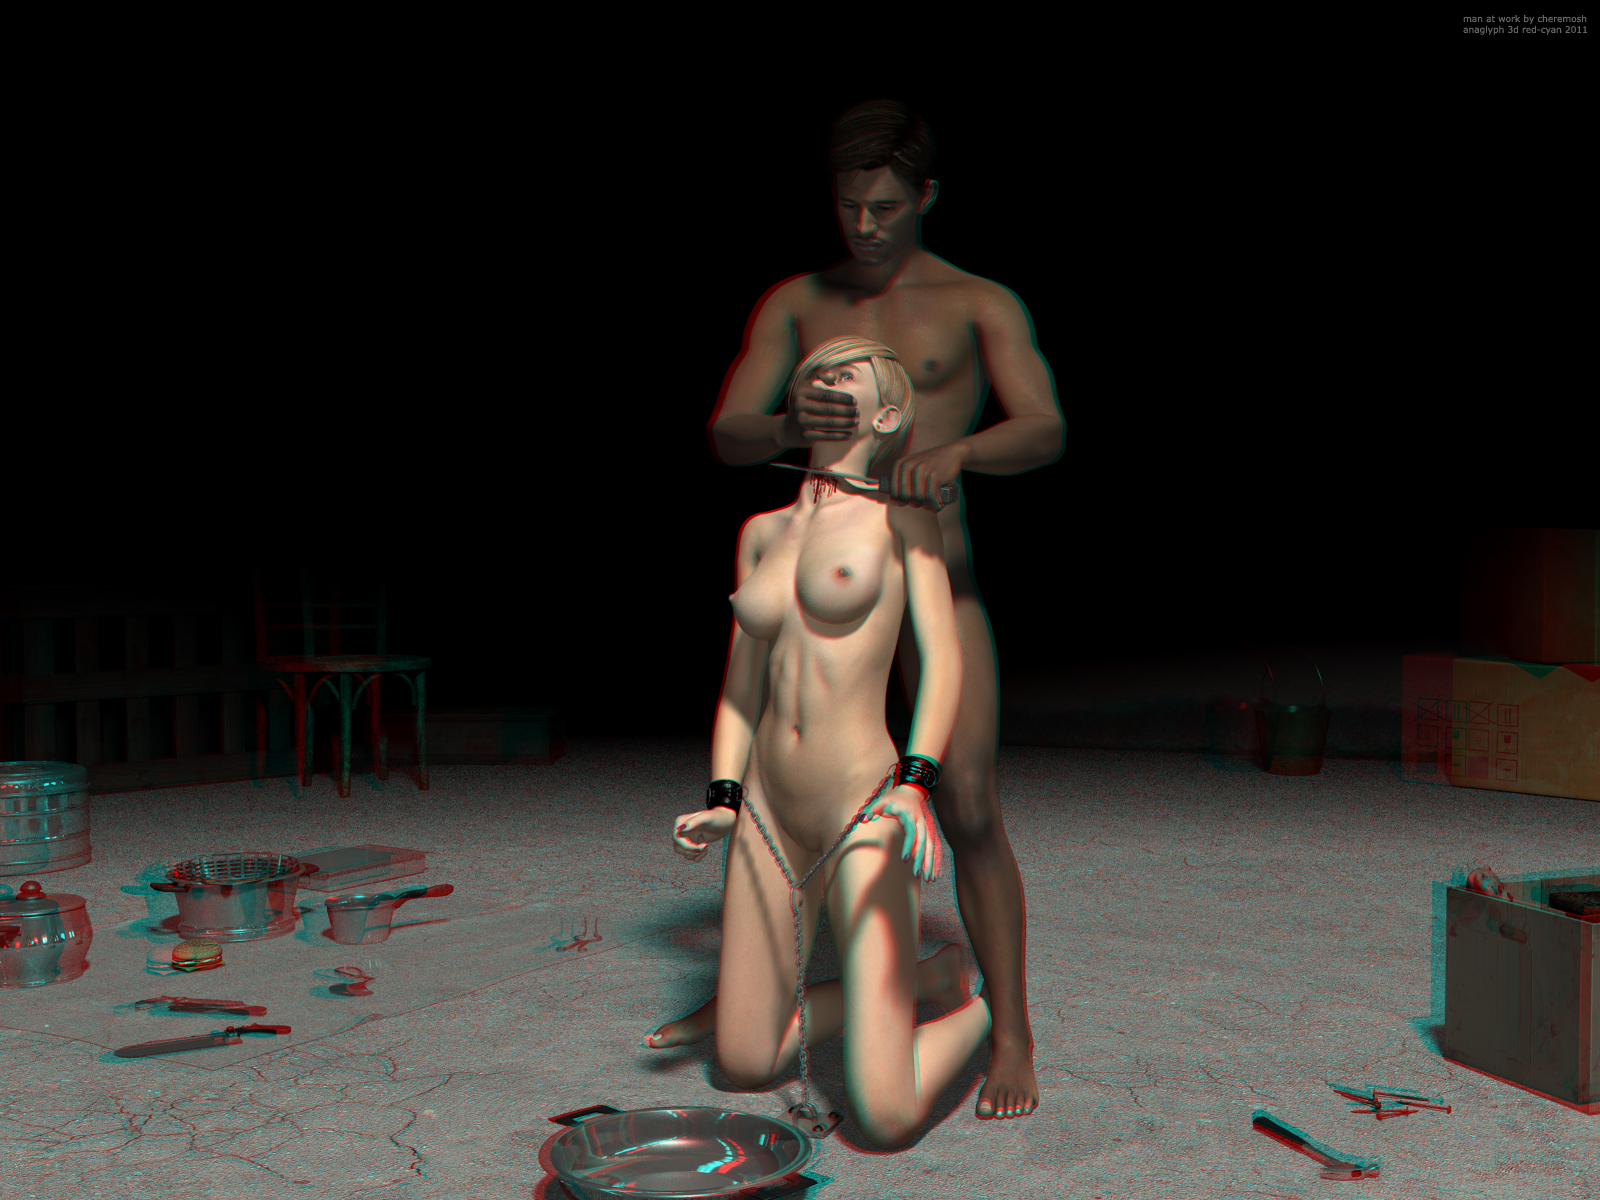 Anime 3d women executed videos naked images